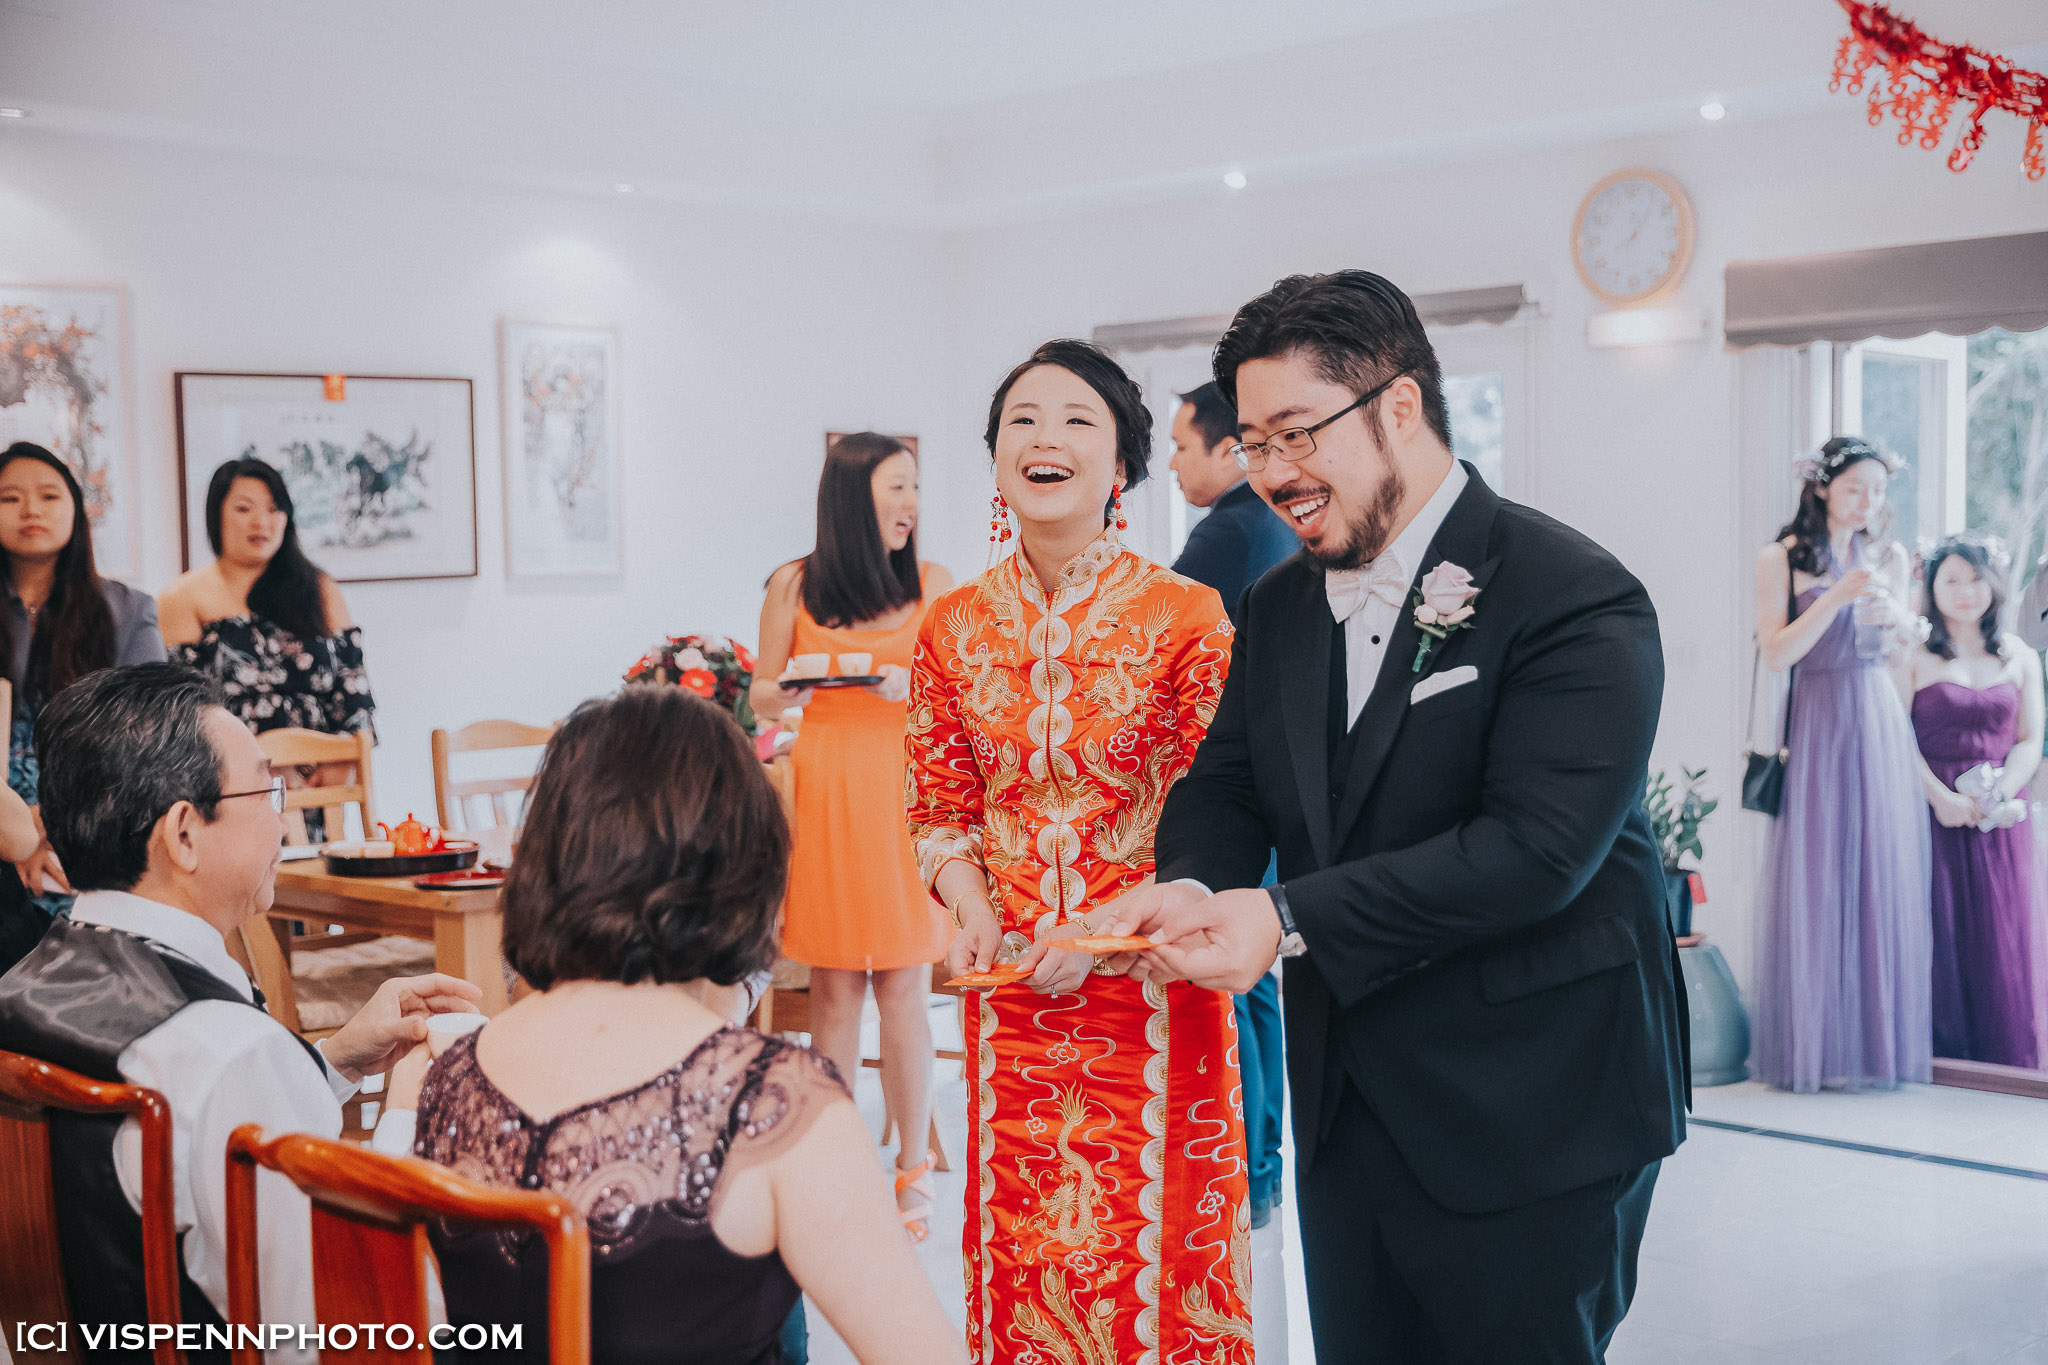 WEDDING DAY Photography Melbourne 1DX 2018